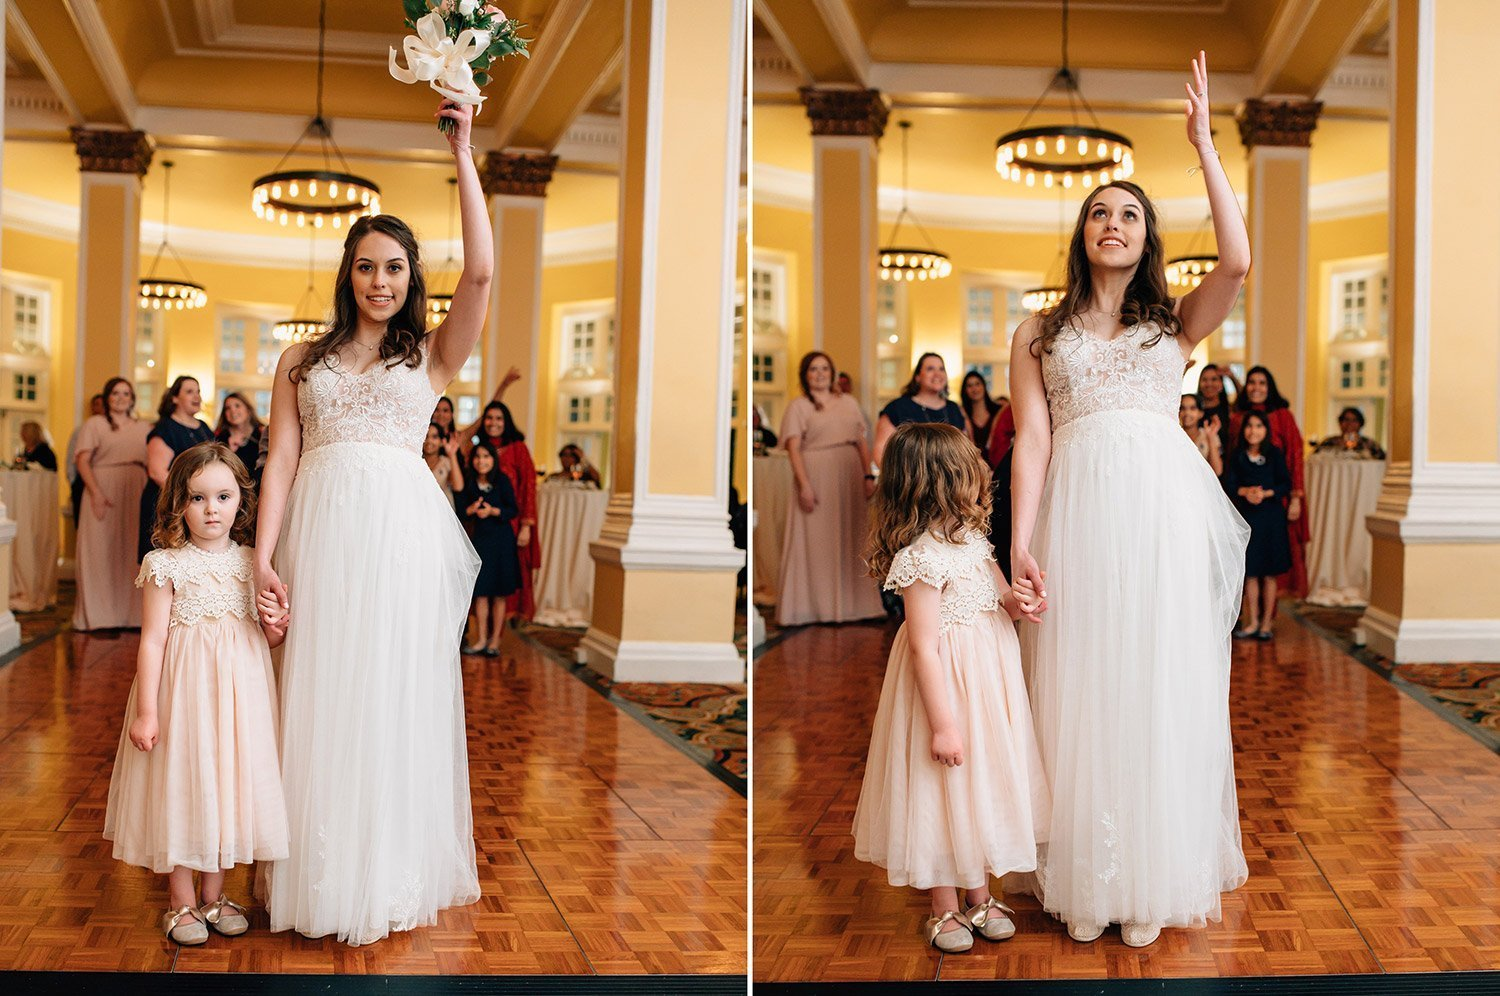 flower girl helps bride with bouquet toss